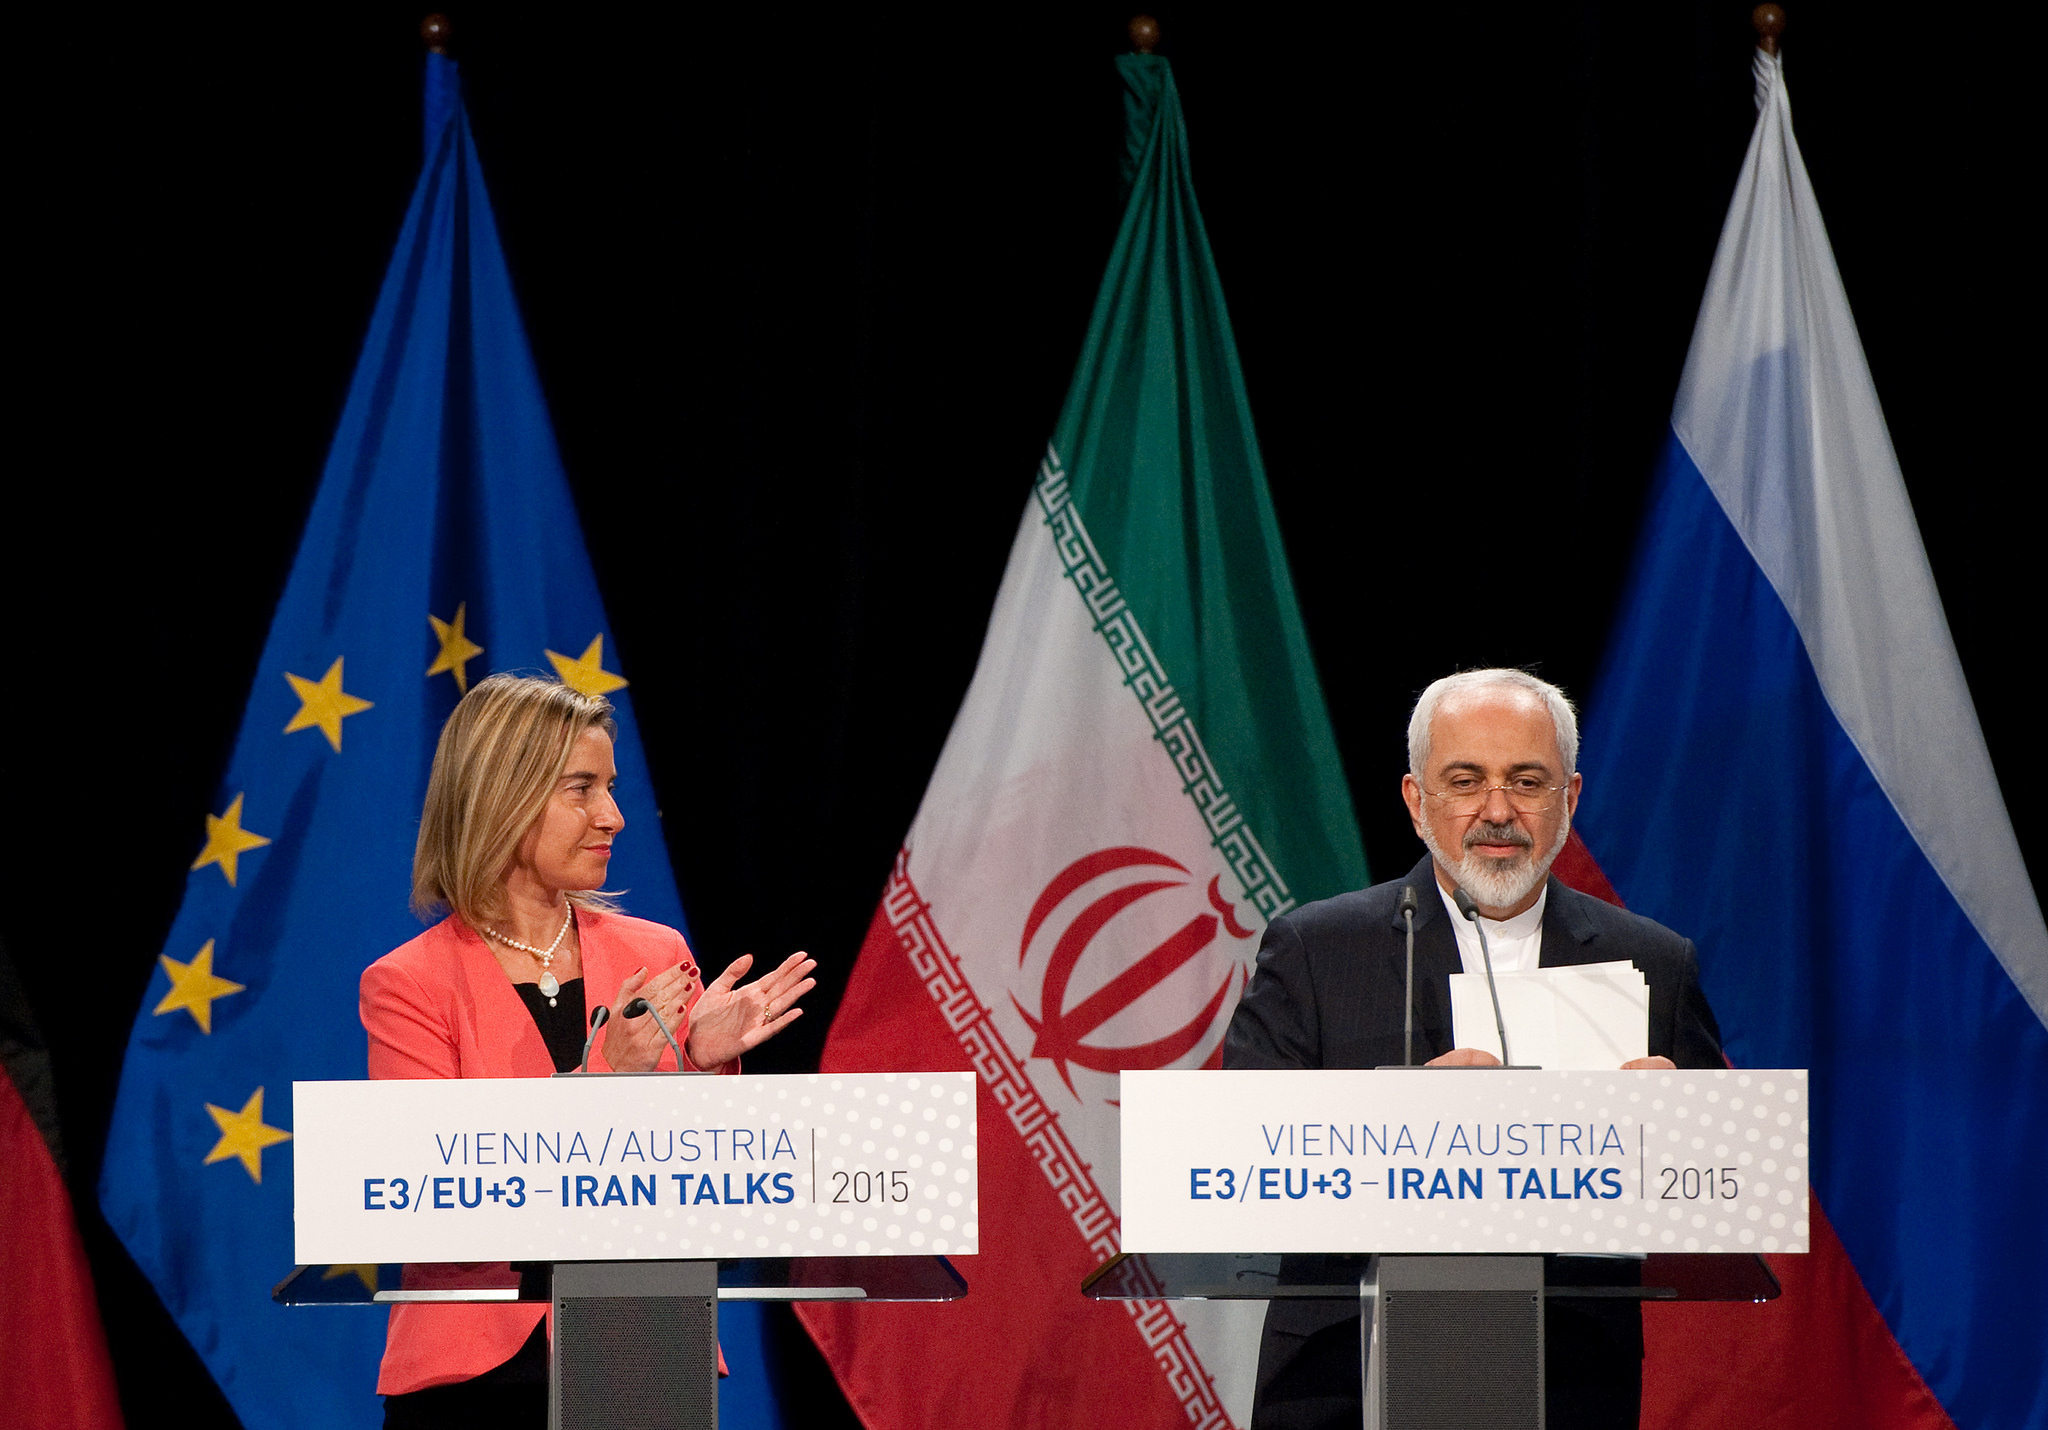 The Iran Deal is announced by EU High Representative Federica Mogherini and Iran Foreign Minister Javad Zarif at the venue of the nuclear talks in Vienna, Austria on July 14, 2015. Photo by EU External Action Service (CC BY-NC 2.0)